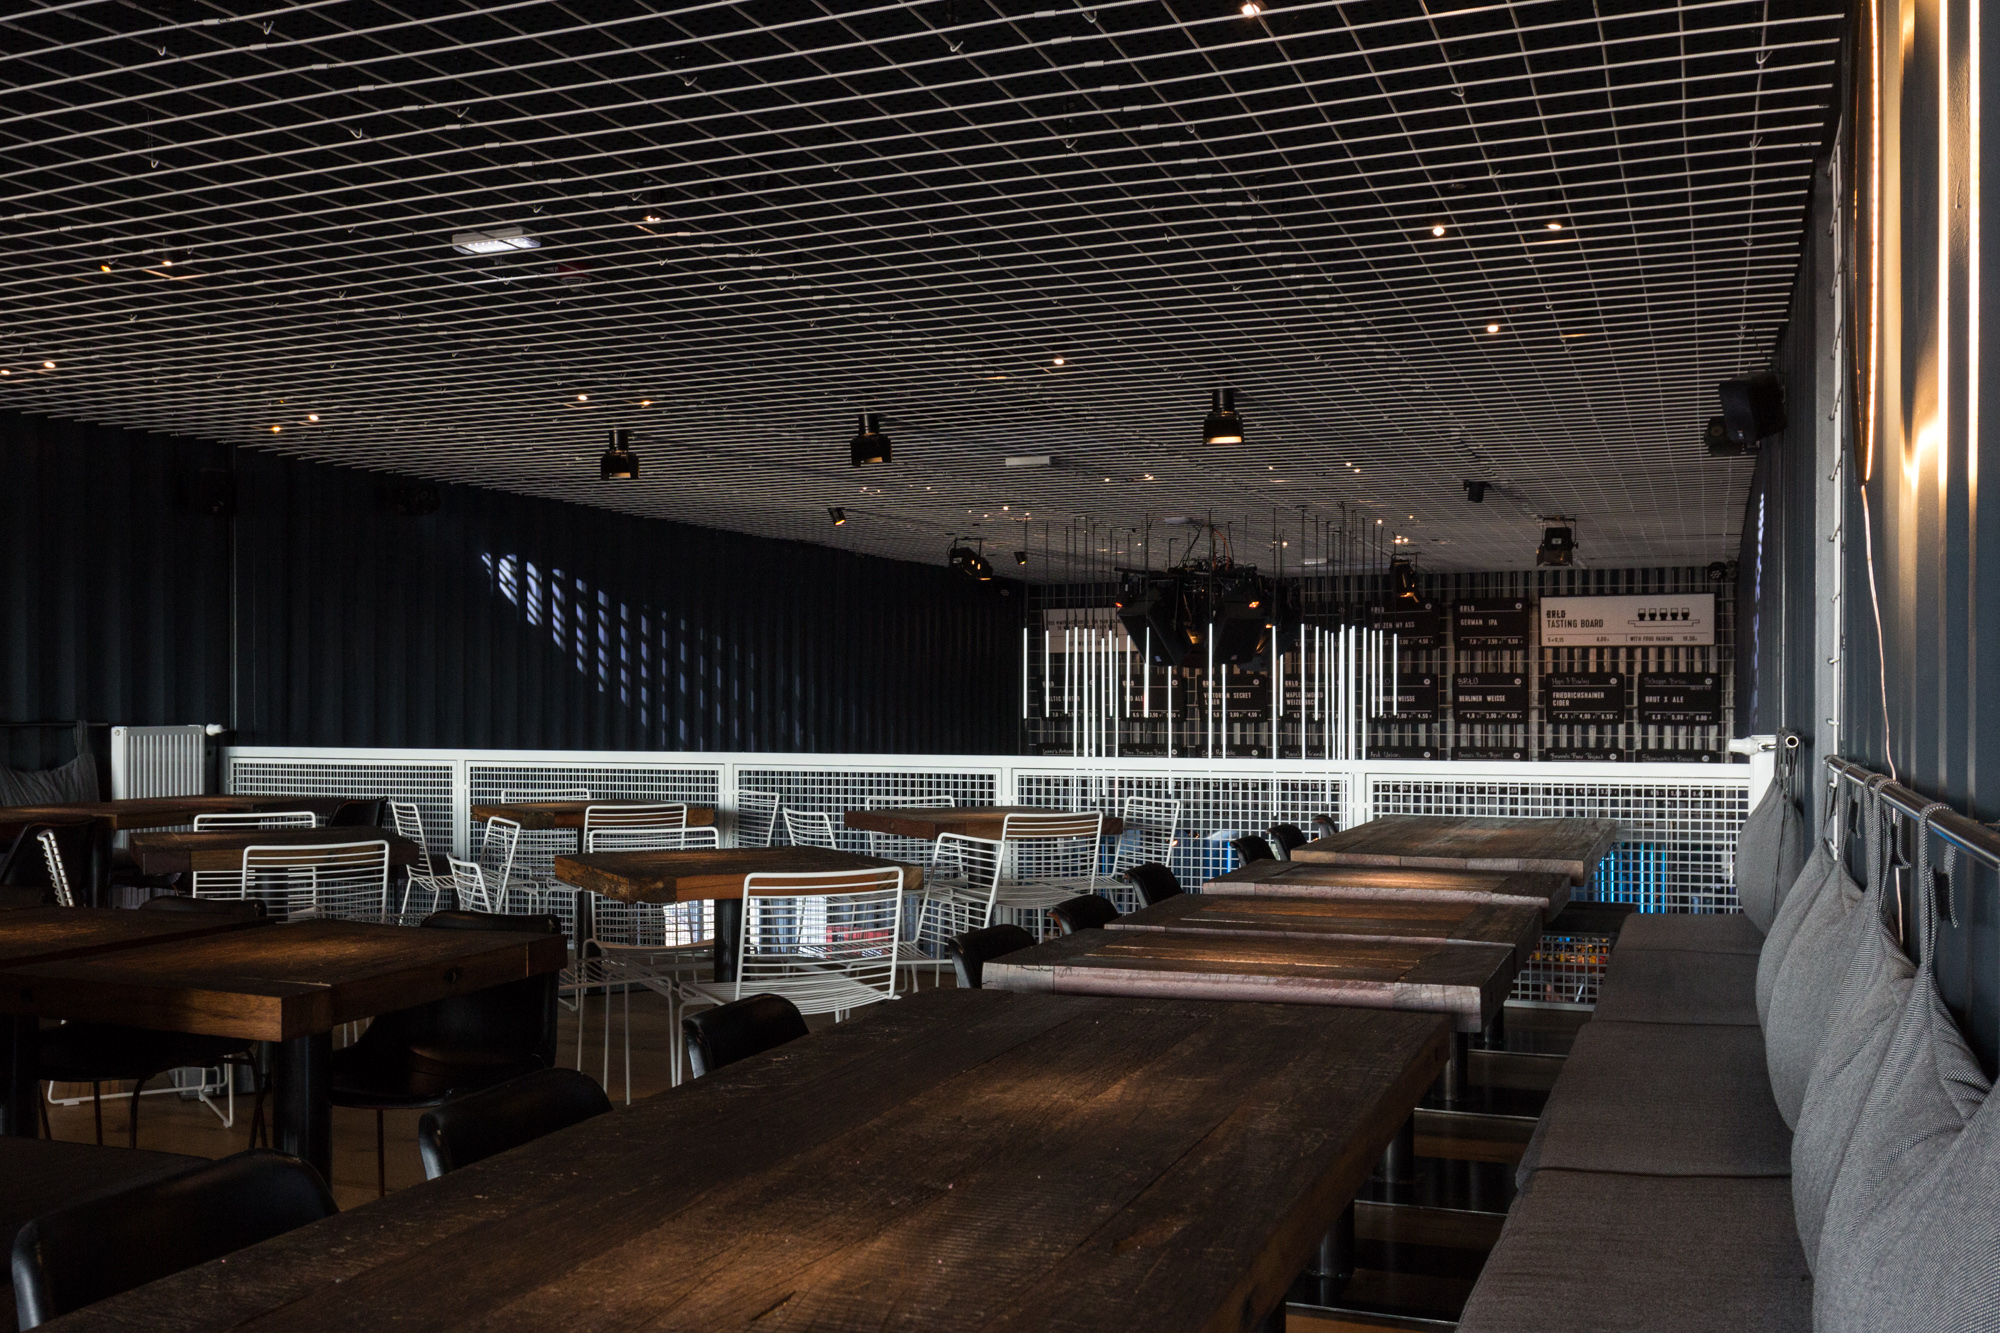 Seating and tables on the mezzanine level at BRLO Brwhouse - a craft beer brewery, bar, restaurant and beer garden and the edge of Park am Gleisdreieck in Berlin